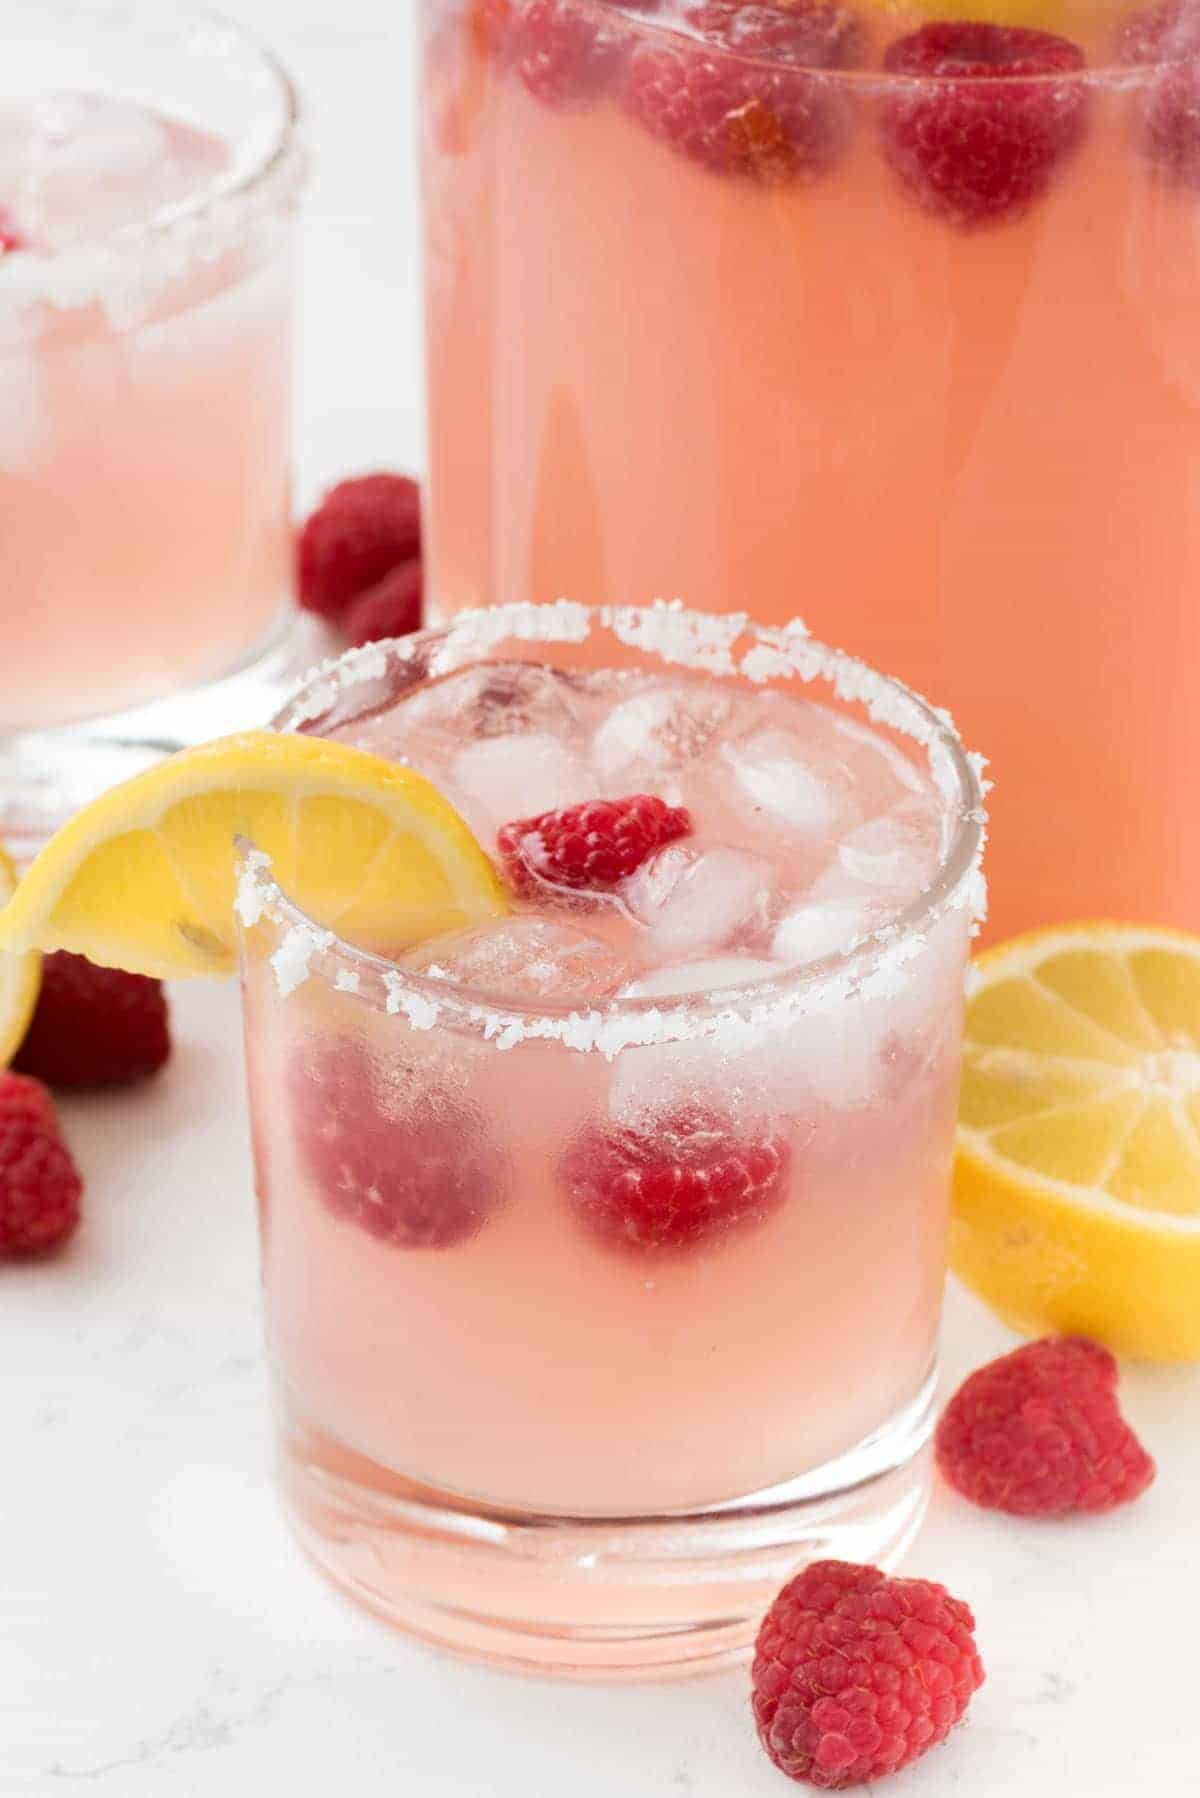 Raspberry margarita recipe